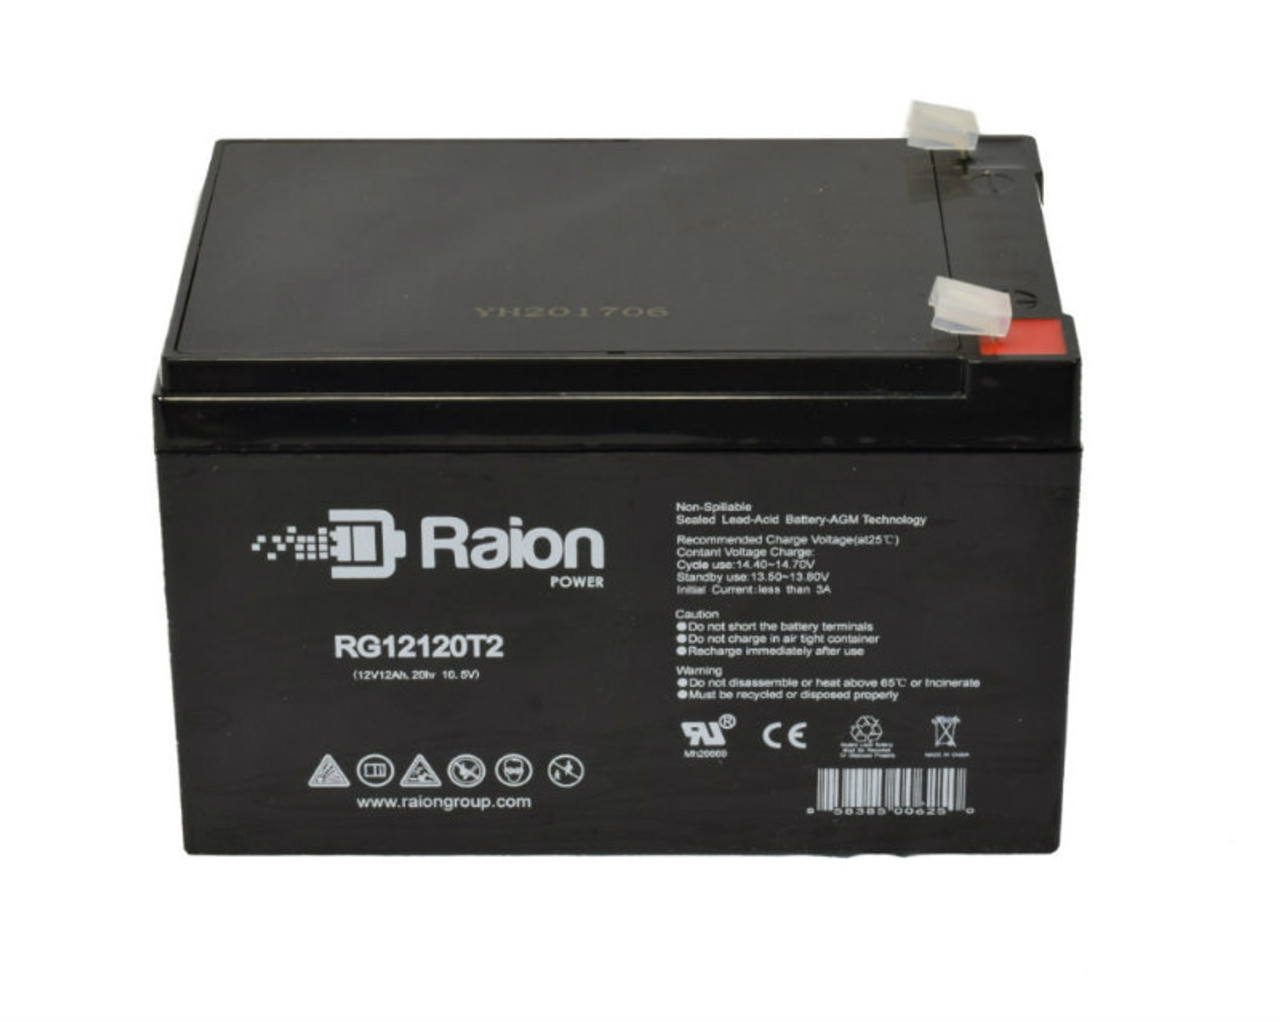 Raion Power RG12120T2 SLA Battery for Electric Mobility Rascal 140T Wheelchairs